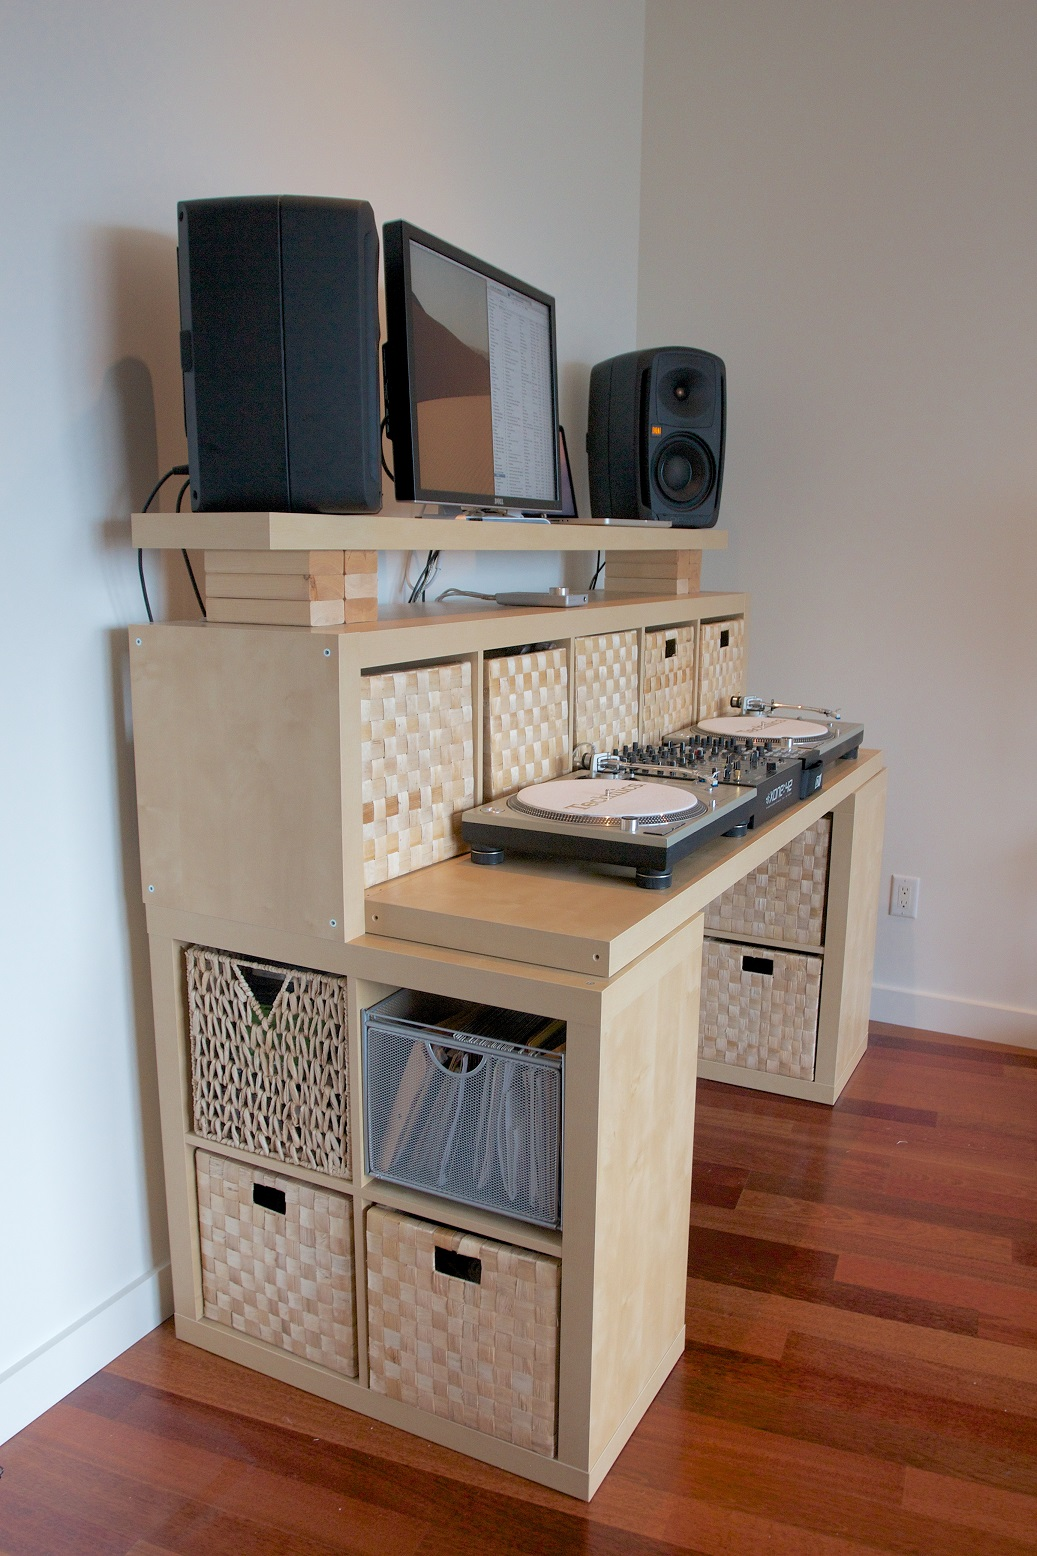 The Spaceship Diy Standing Desk A Massive Attractive